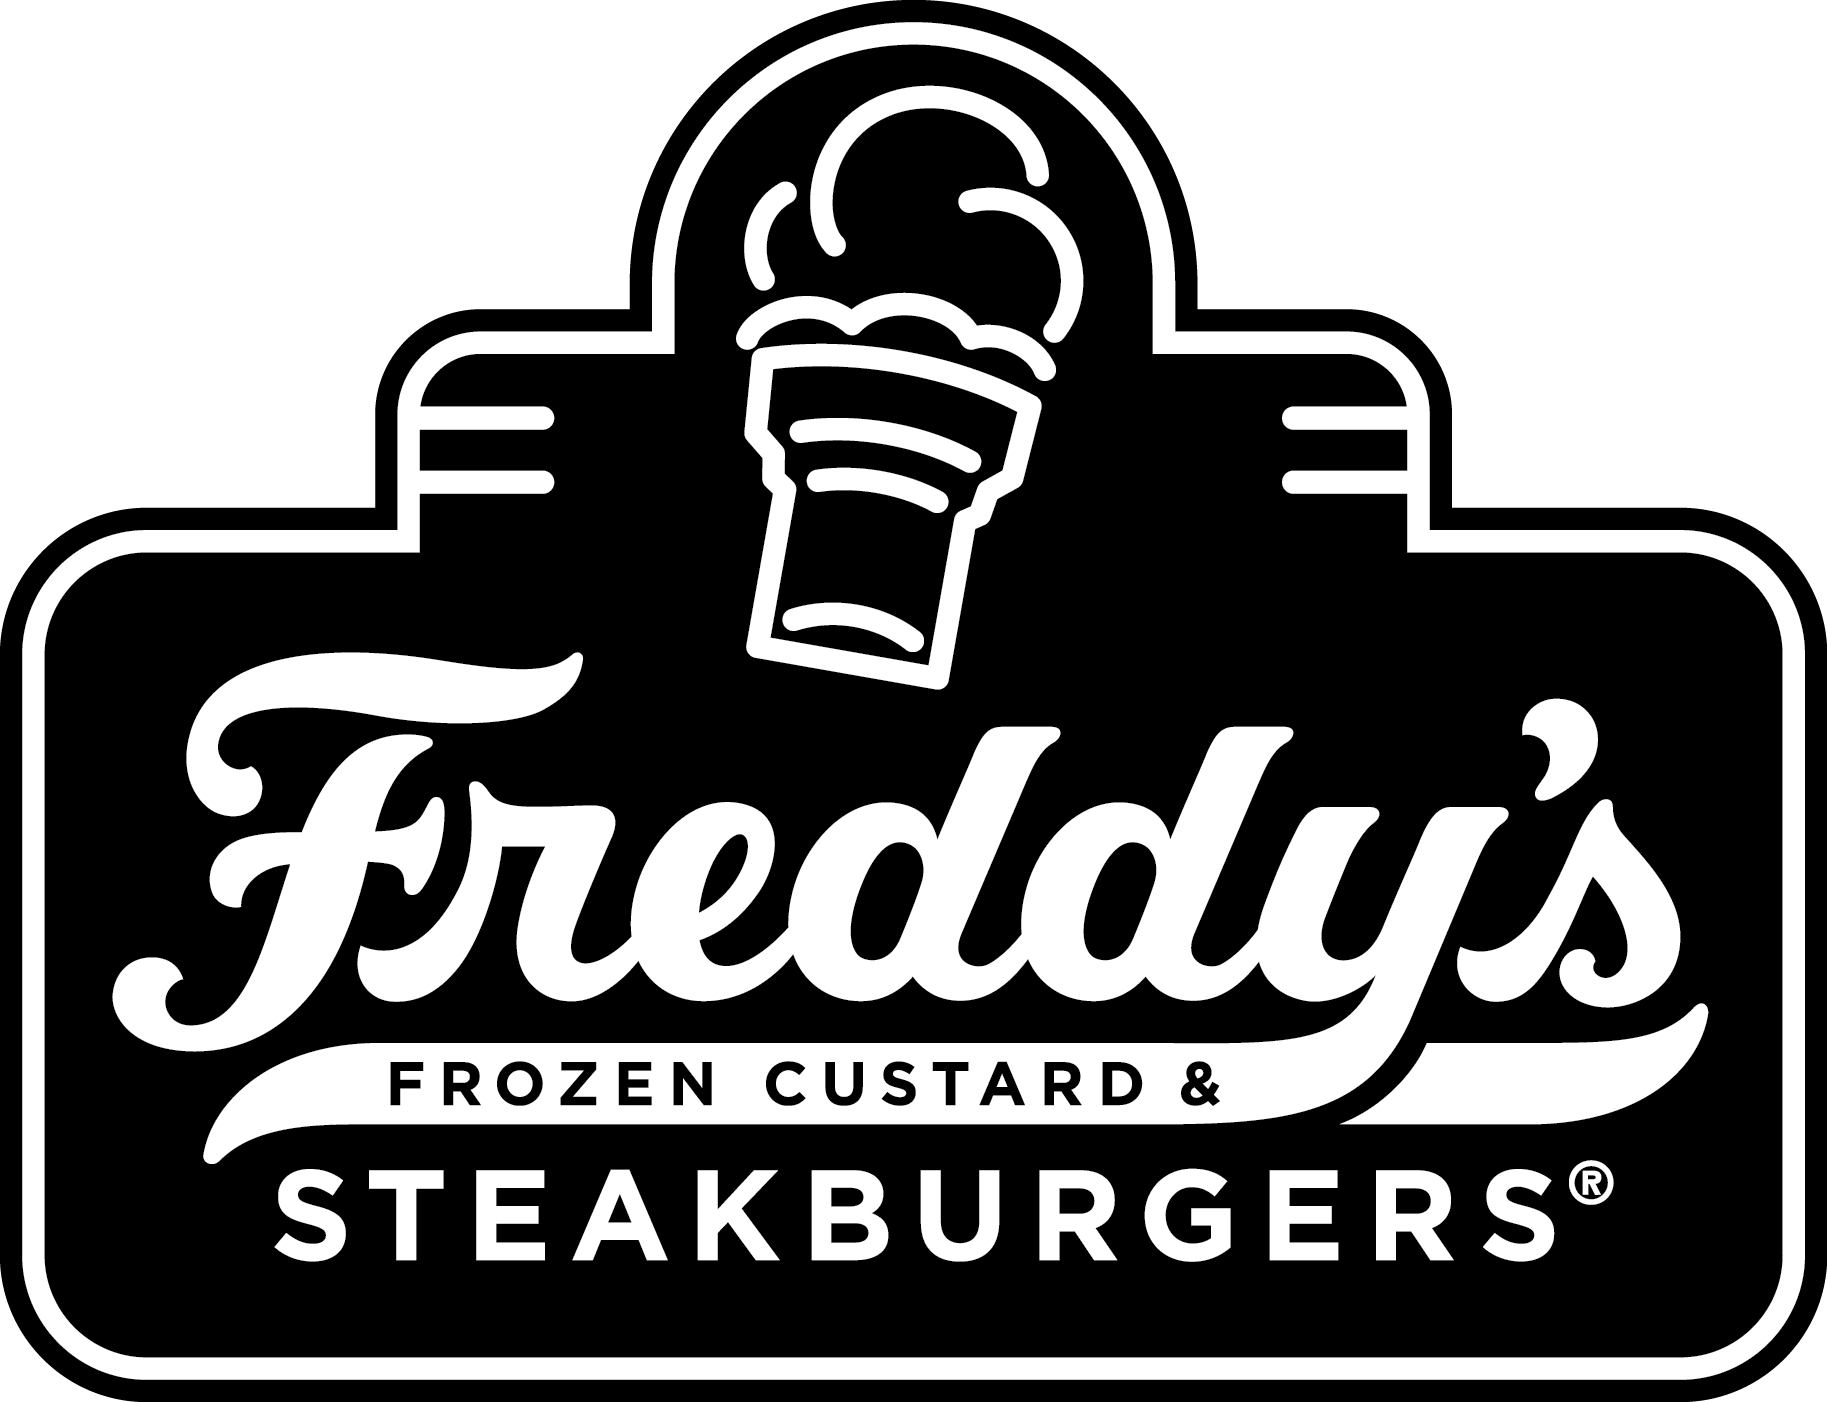 Freddy's Contained Shape Logo Black